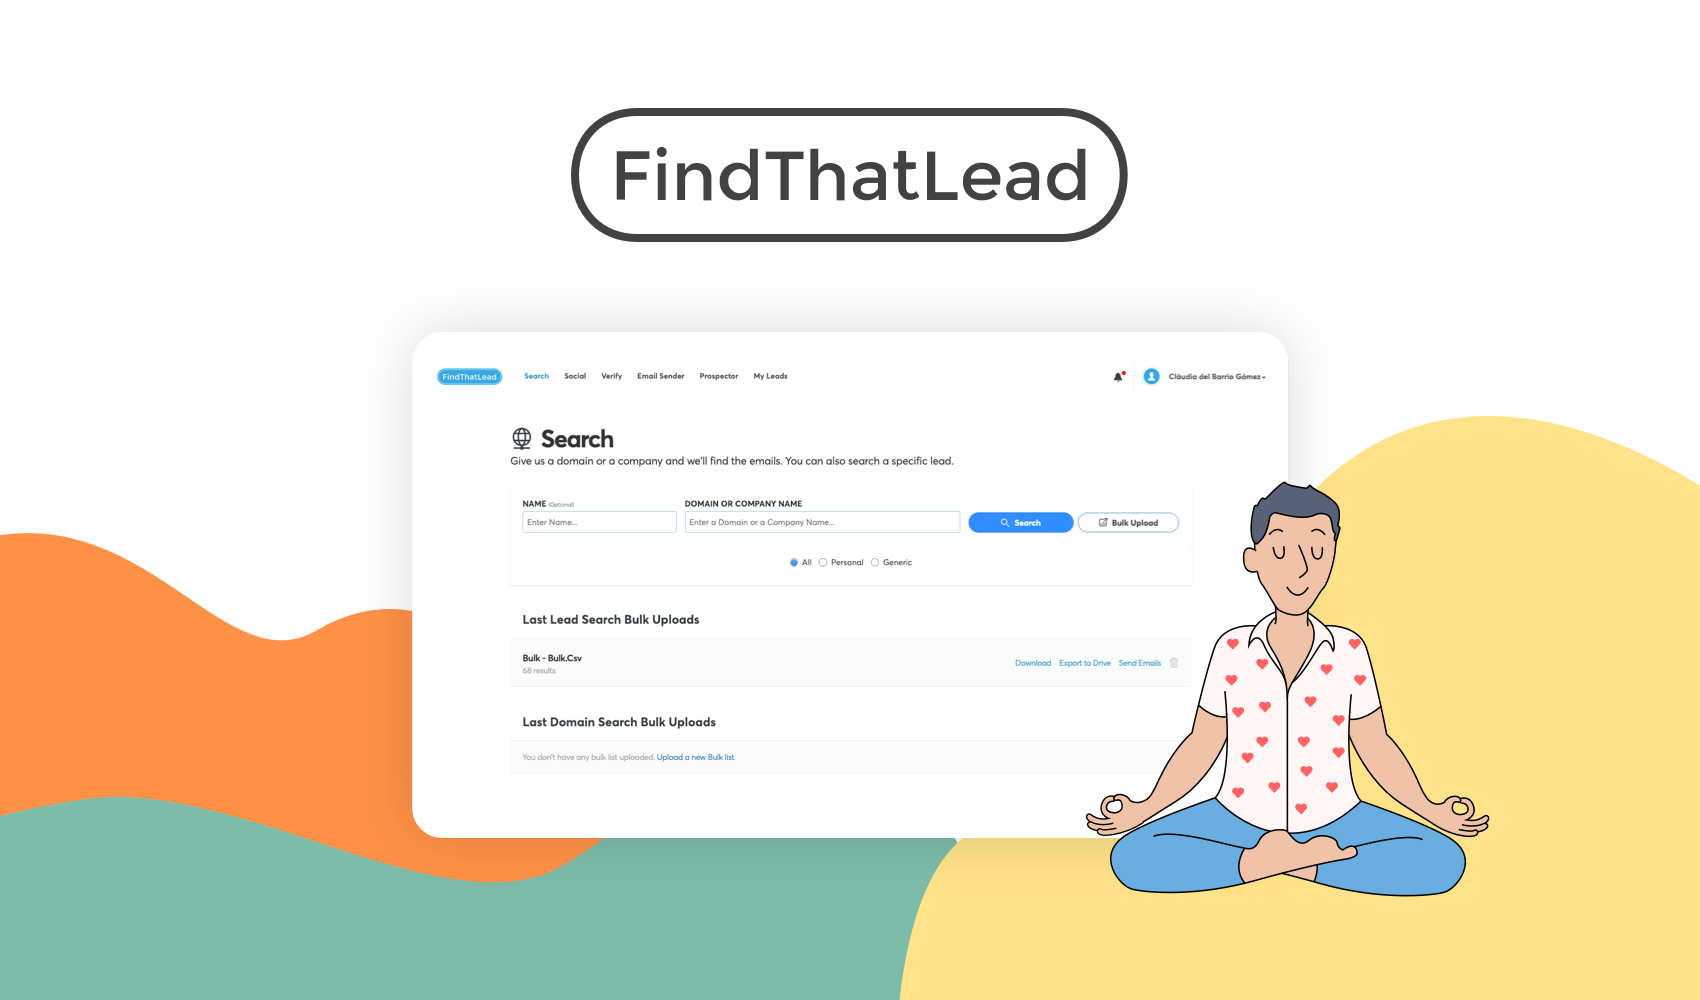 FindThatLead - 5 Lifetime Deals Italia